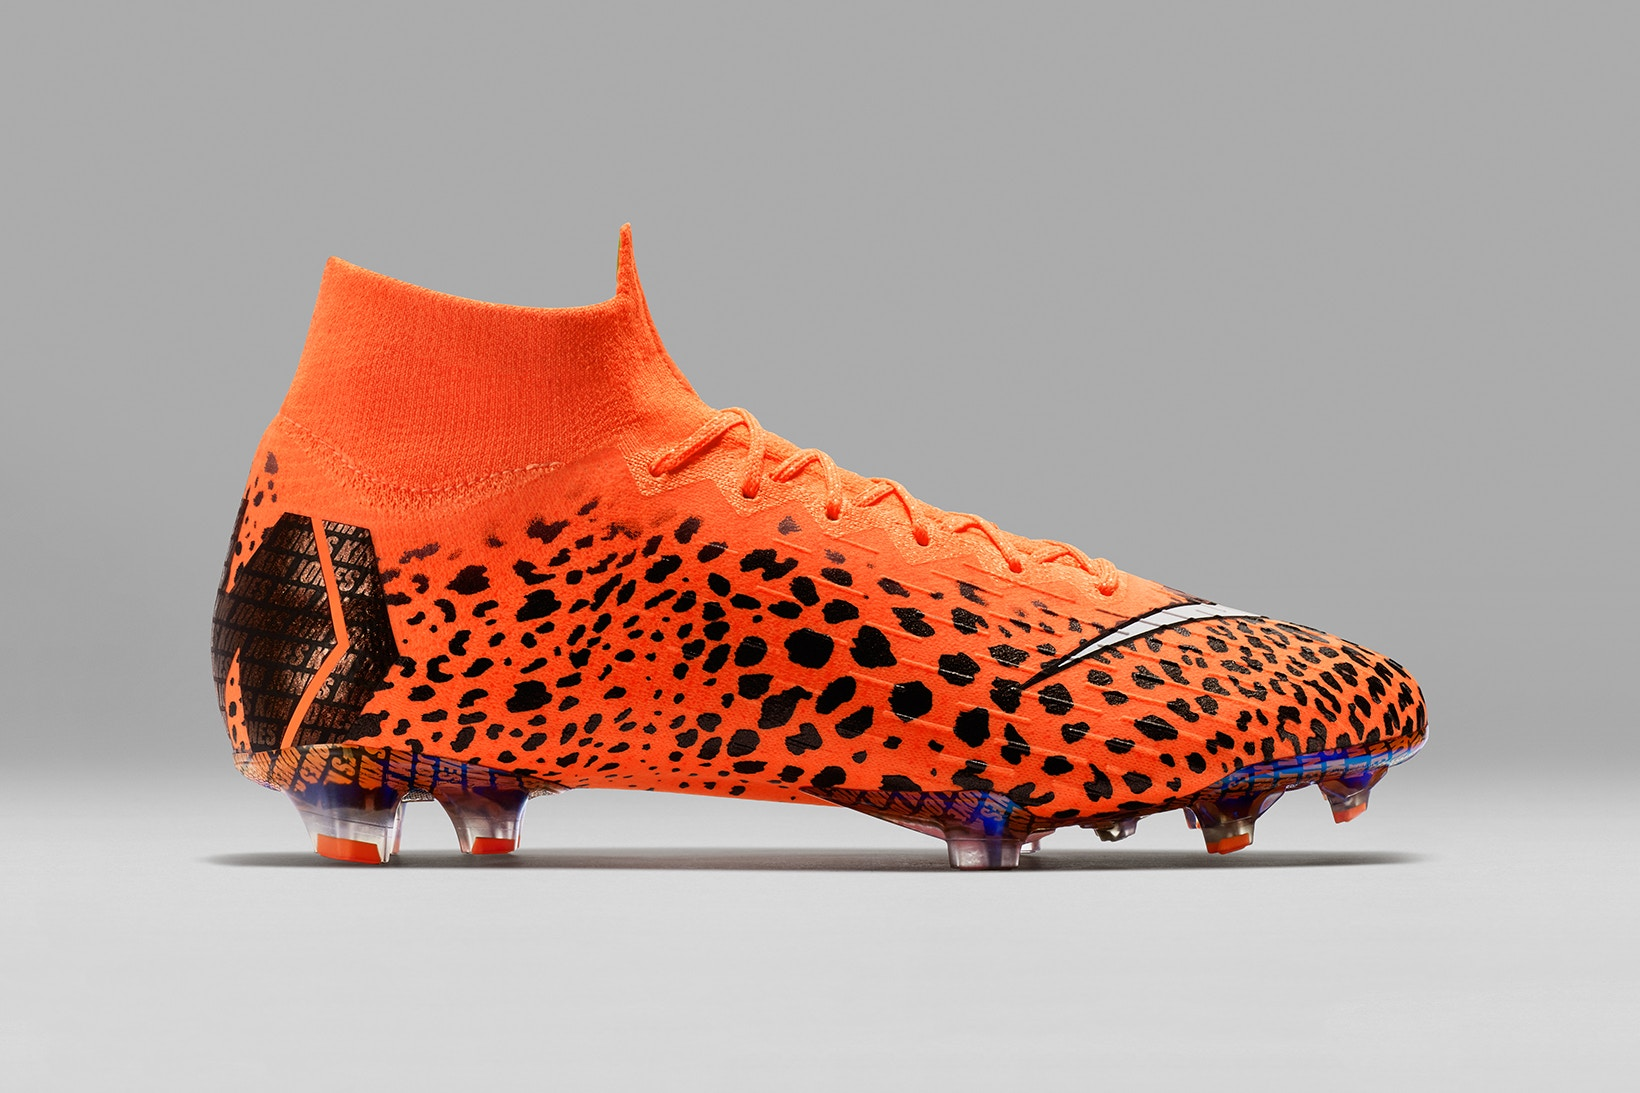 Kim Jones Reworks Nike Mercurial Football Boots kim jones nike football boot mercurial superfly 001